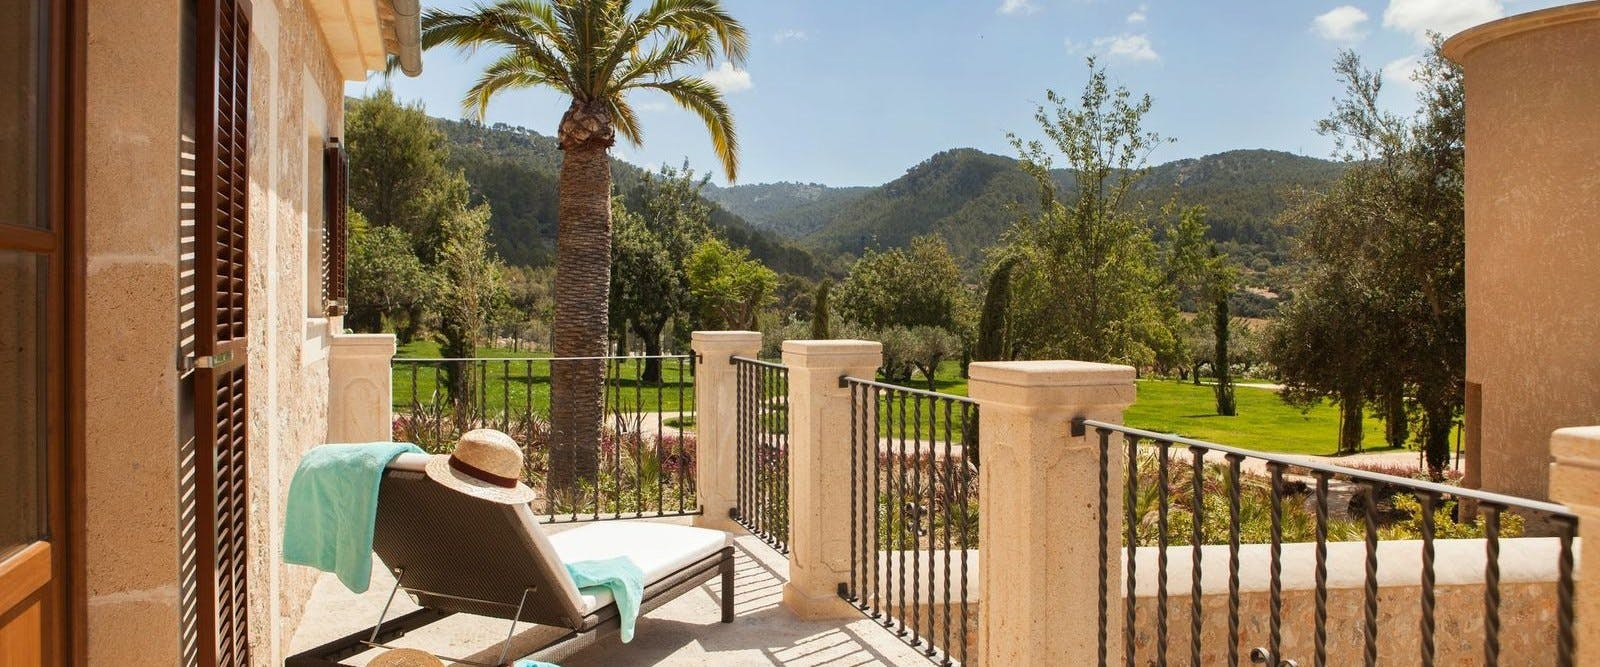 Accommodation at Castell Son Claret, Mallorca, Spain